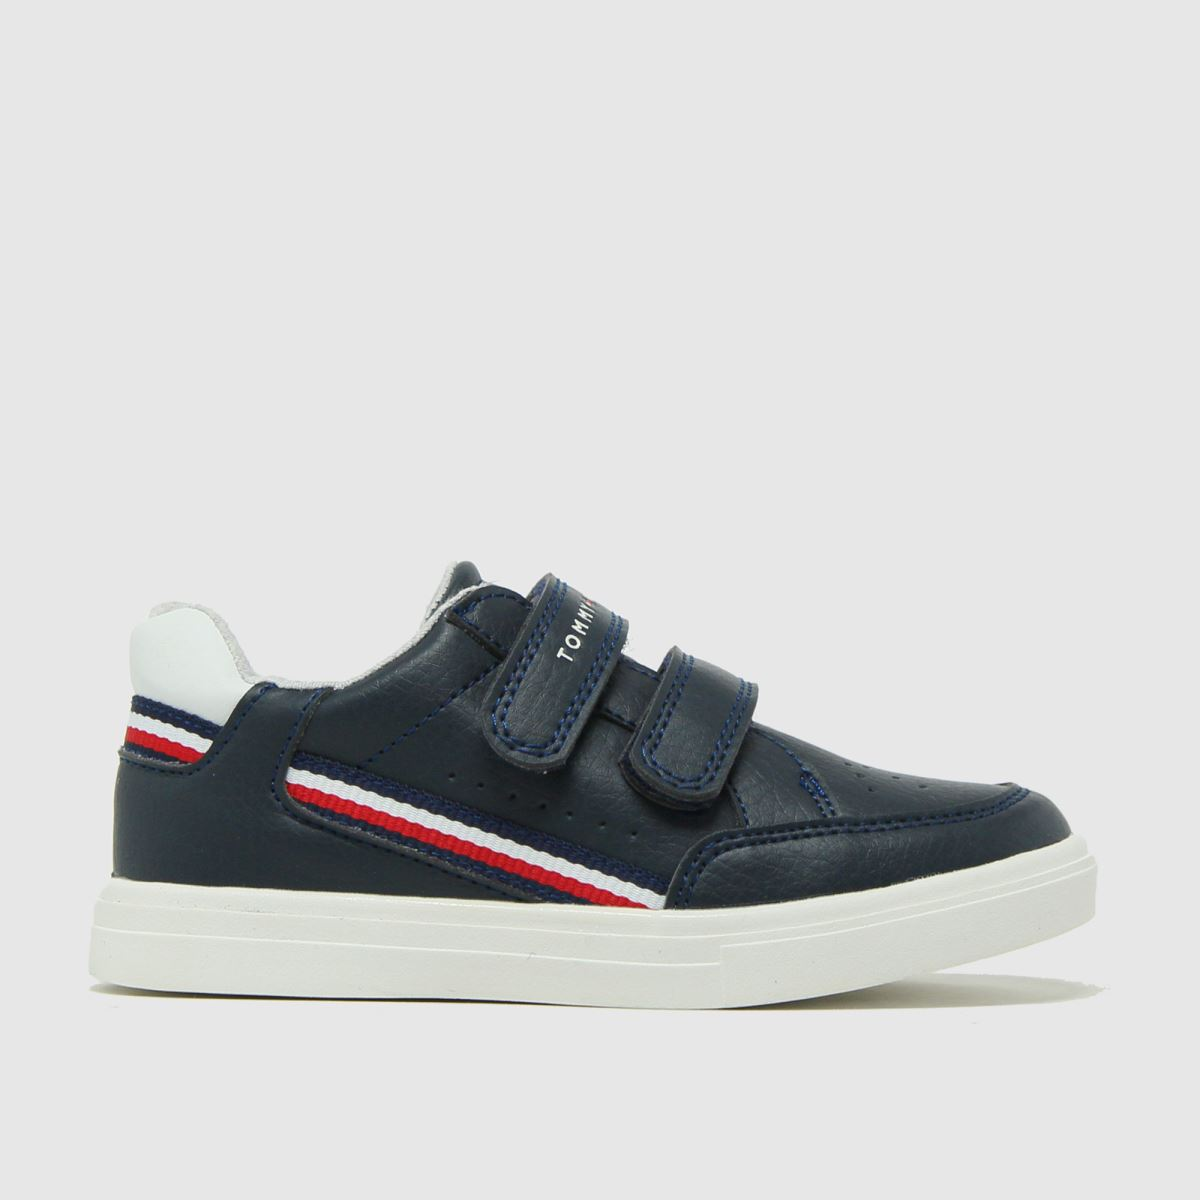 Tommy Hilfiger Navy & White Low Cut Velcro Sneaker Tdlr Trainers